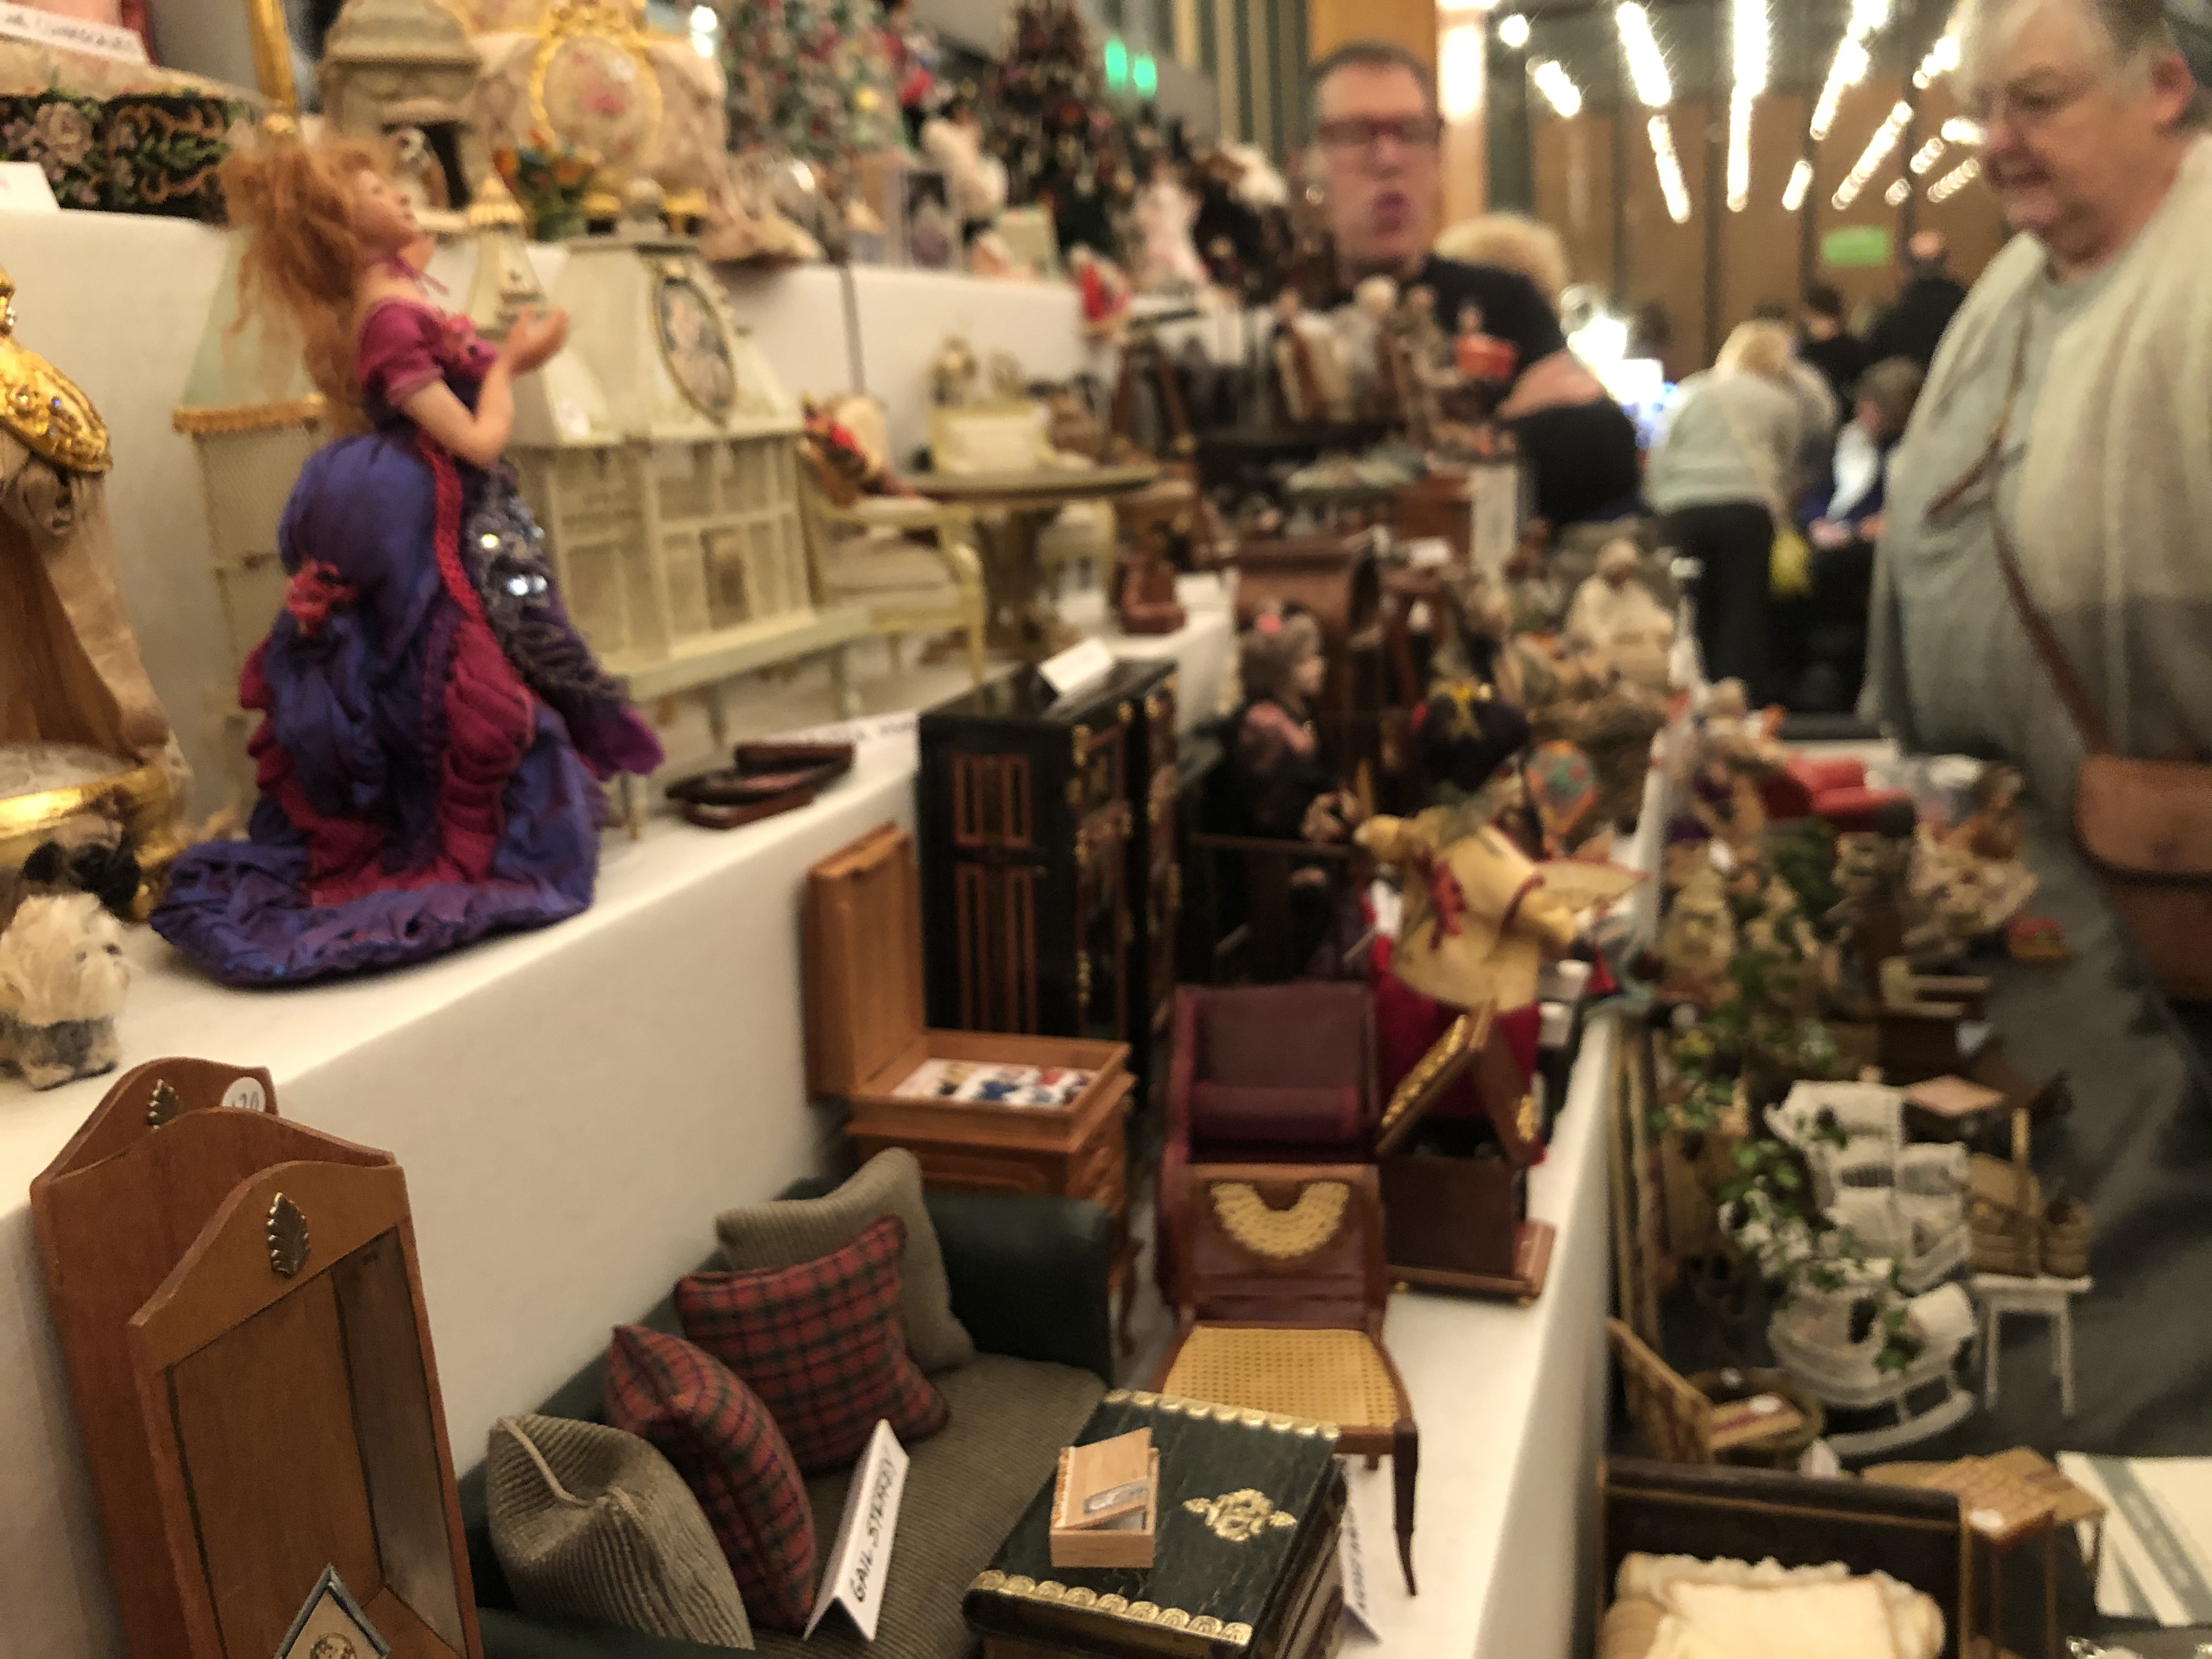 Tiny dolls house furniture show stand